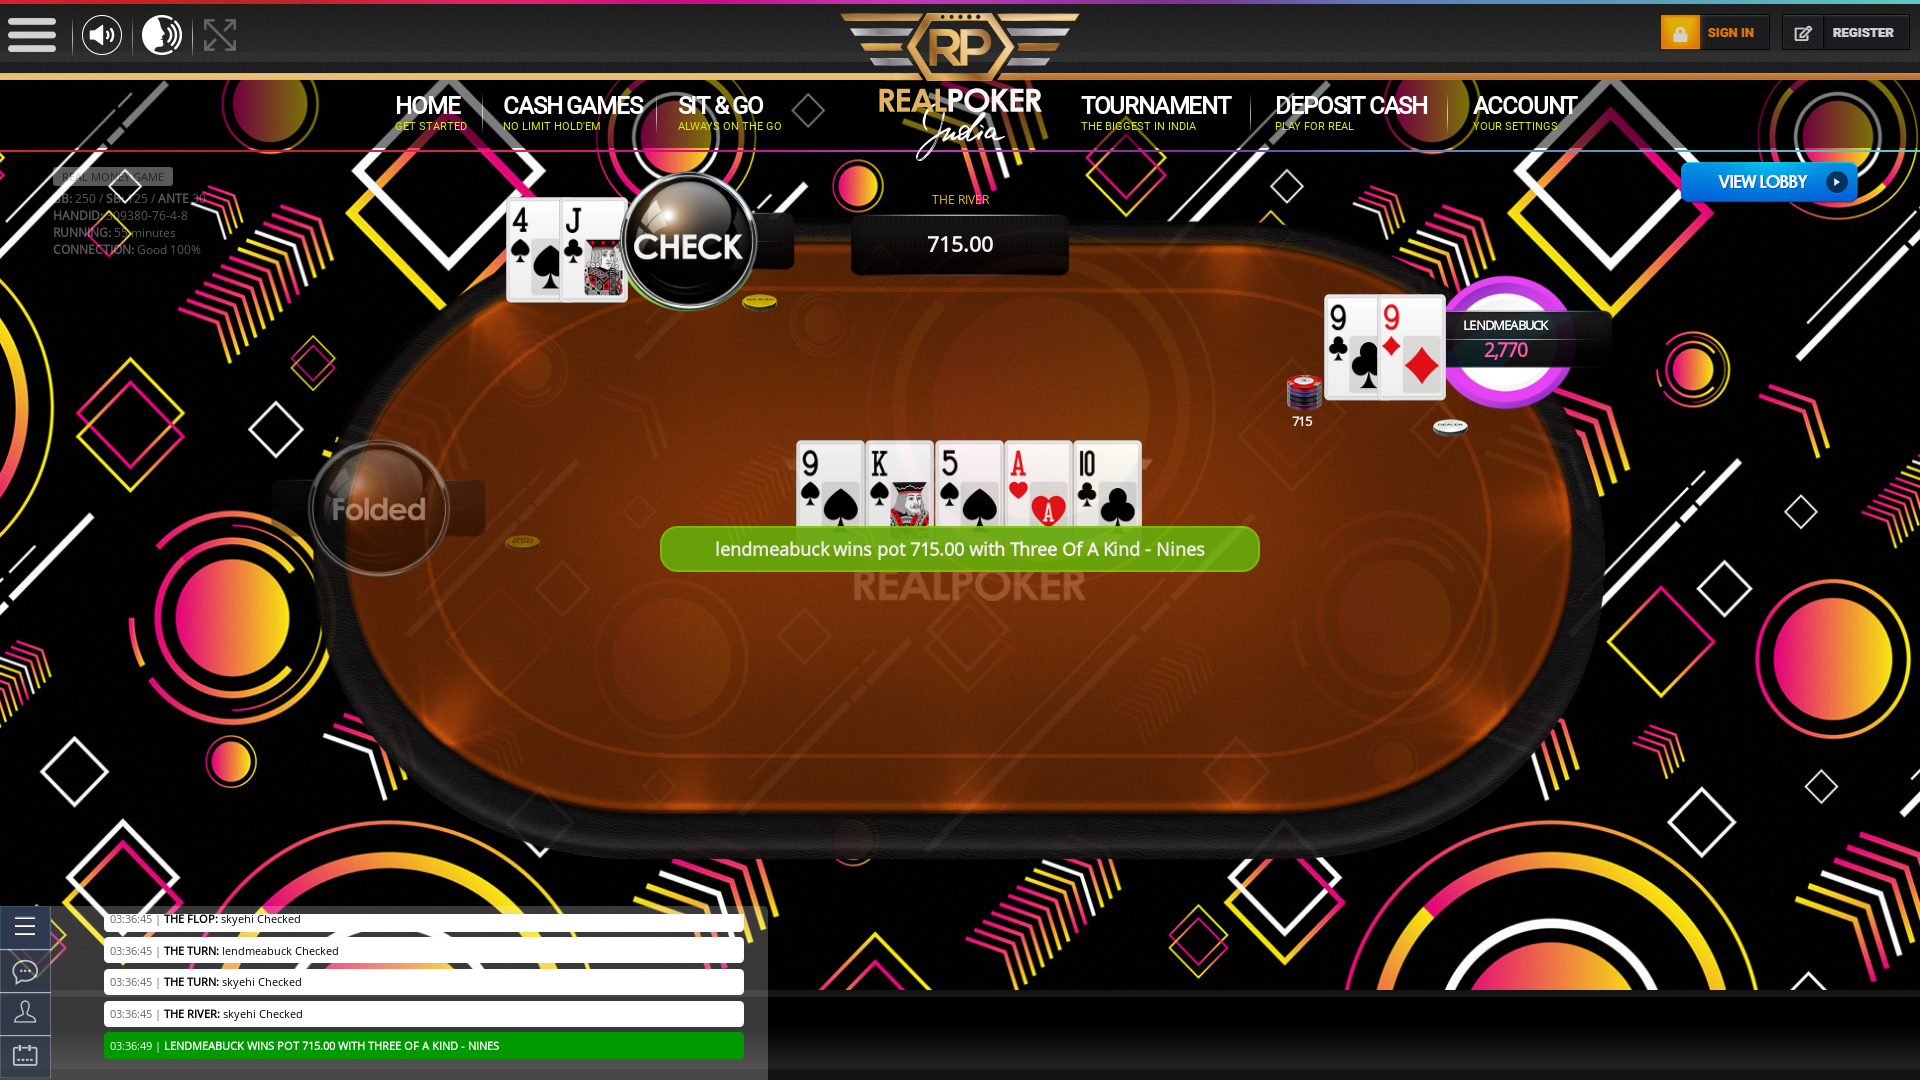 Real poker on a 10 player table in the 55th minute of the game